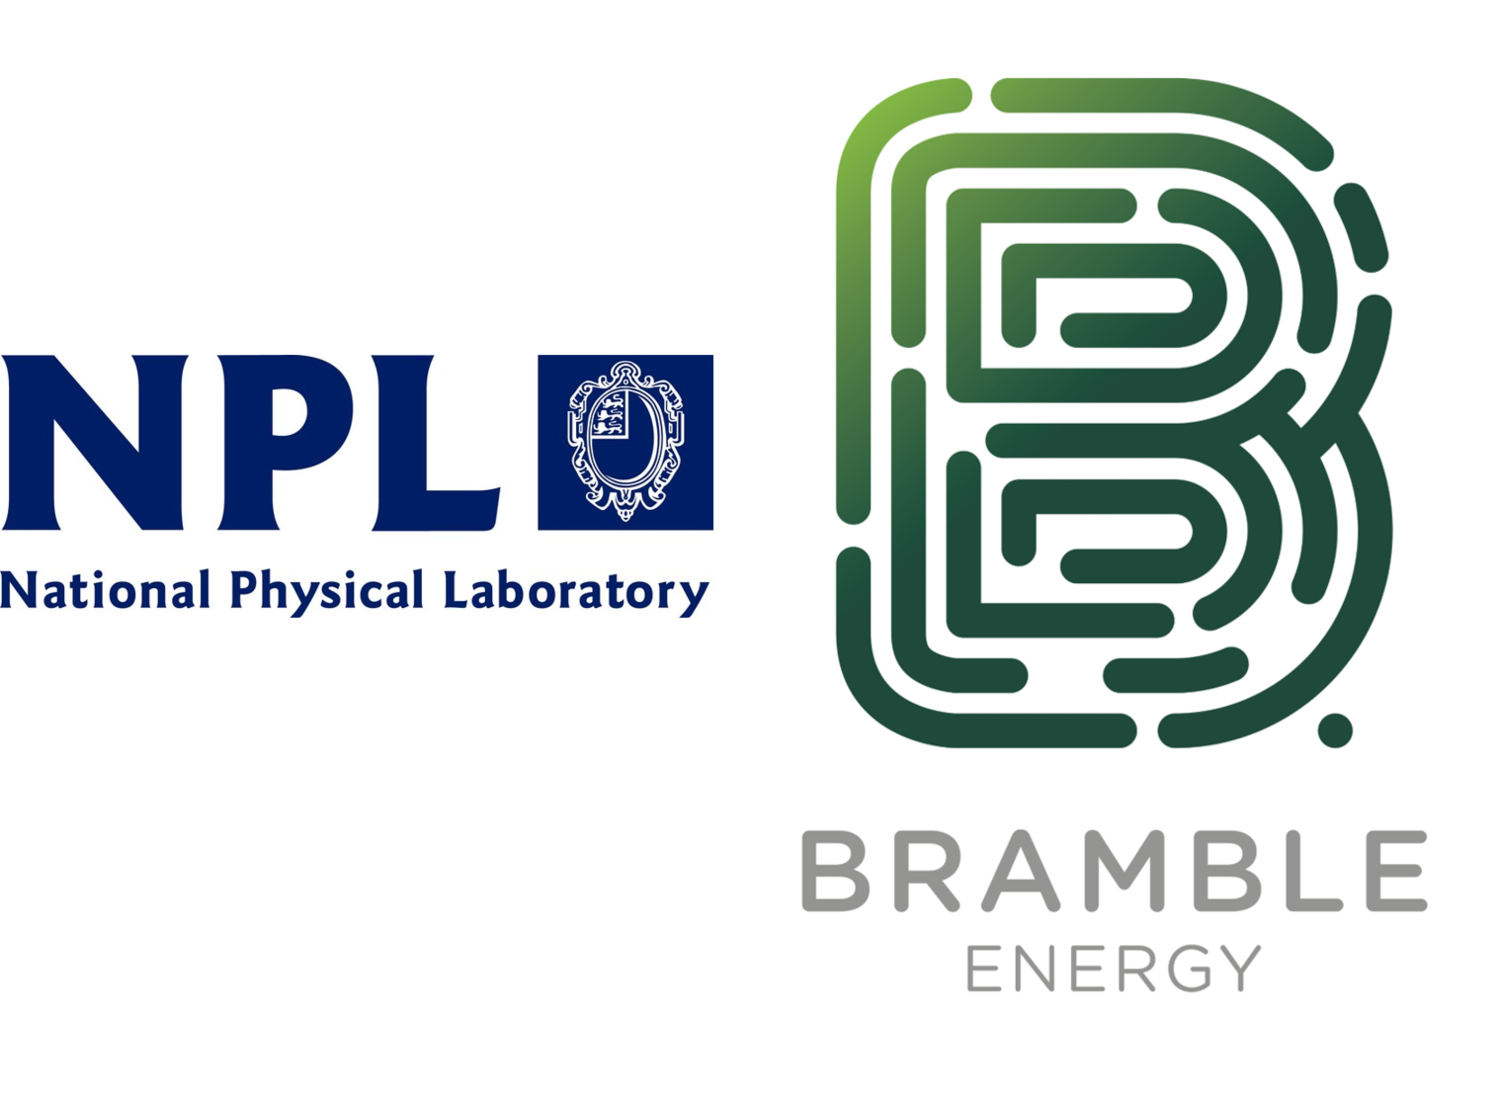 NPL+BRAMBLE+FUEL+CELL+INDUSTRIAL+ADVISORY+GROUP.png